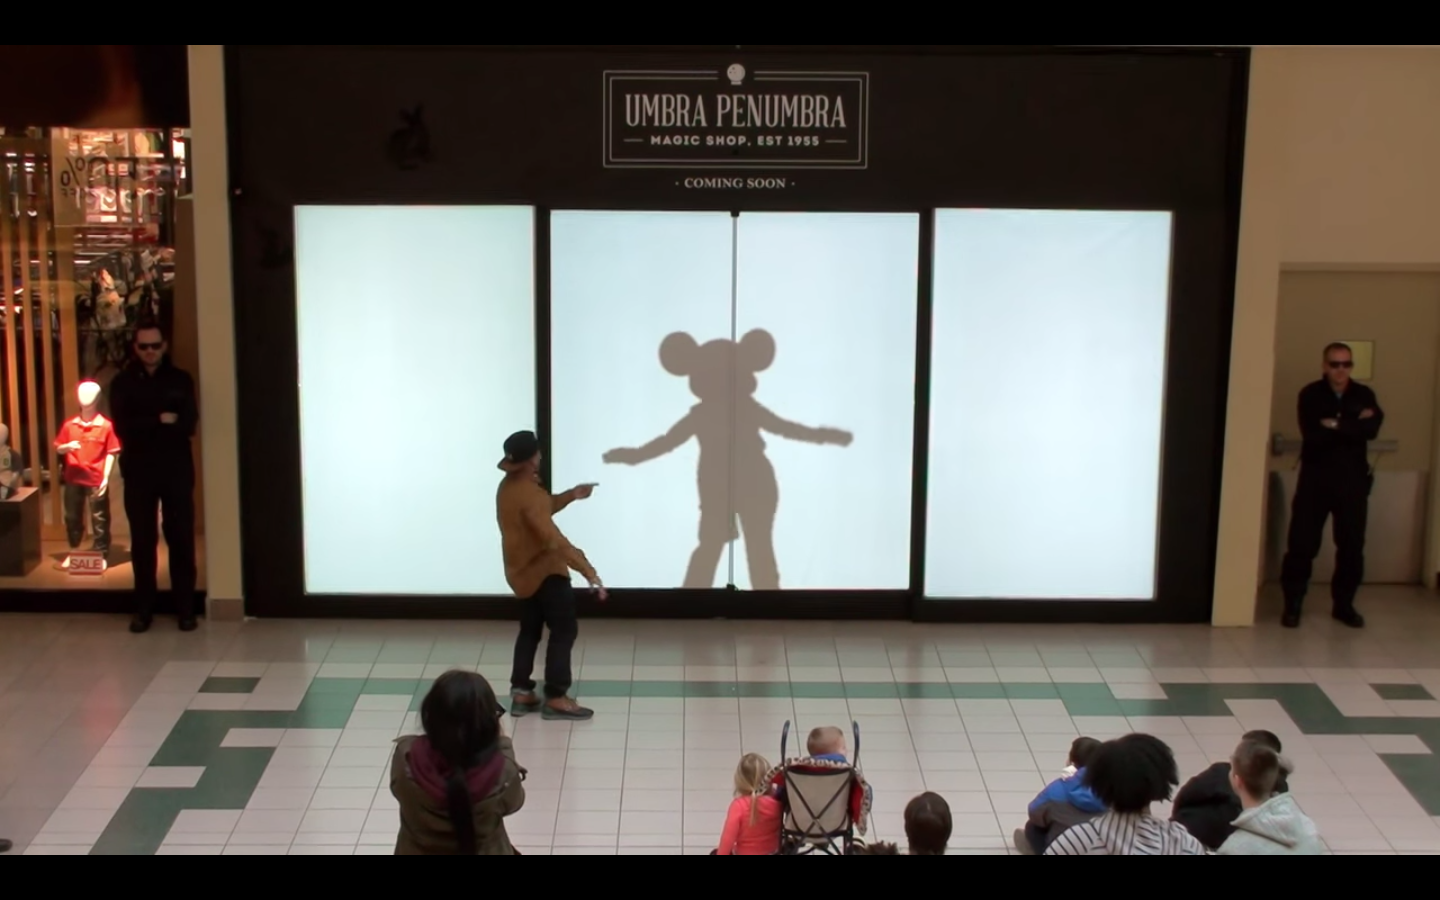 WATCH: Mickey Mouse Dance Battles in Long Island Mall